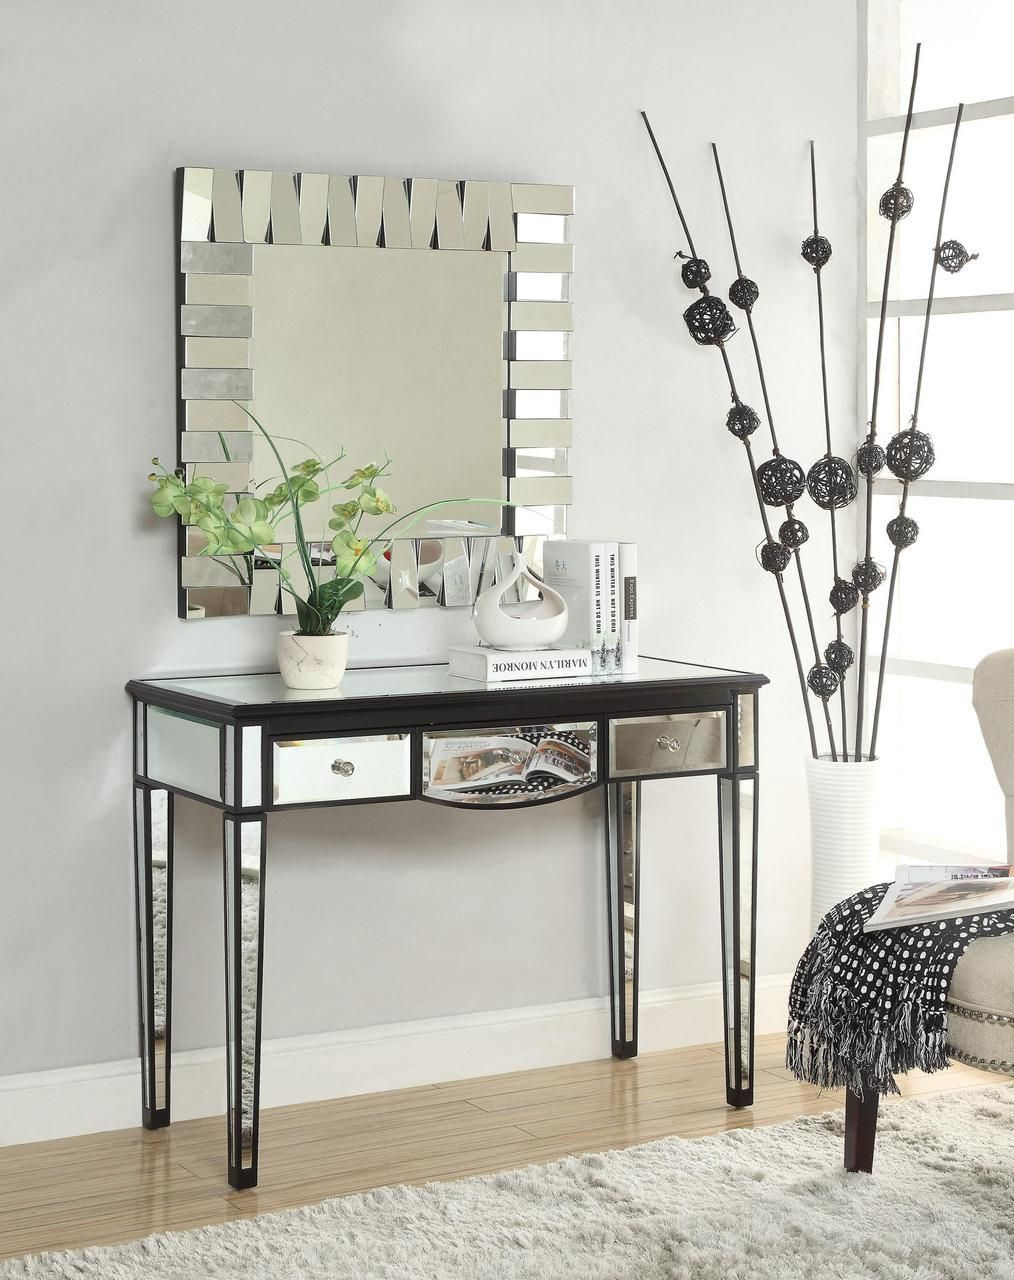 The Xandra Black Mirrored Makeup Vanity Desk with No